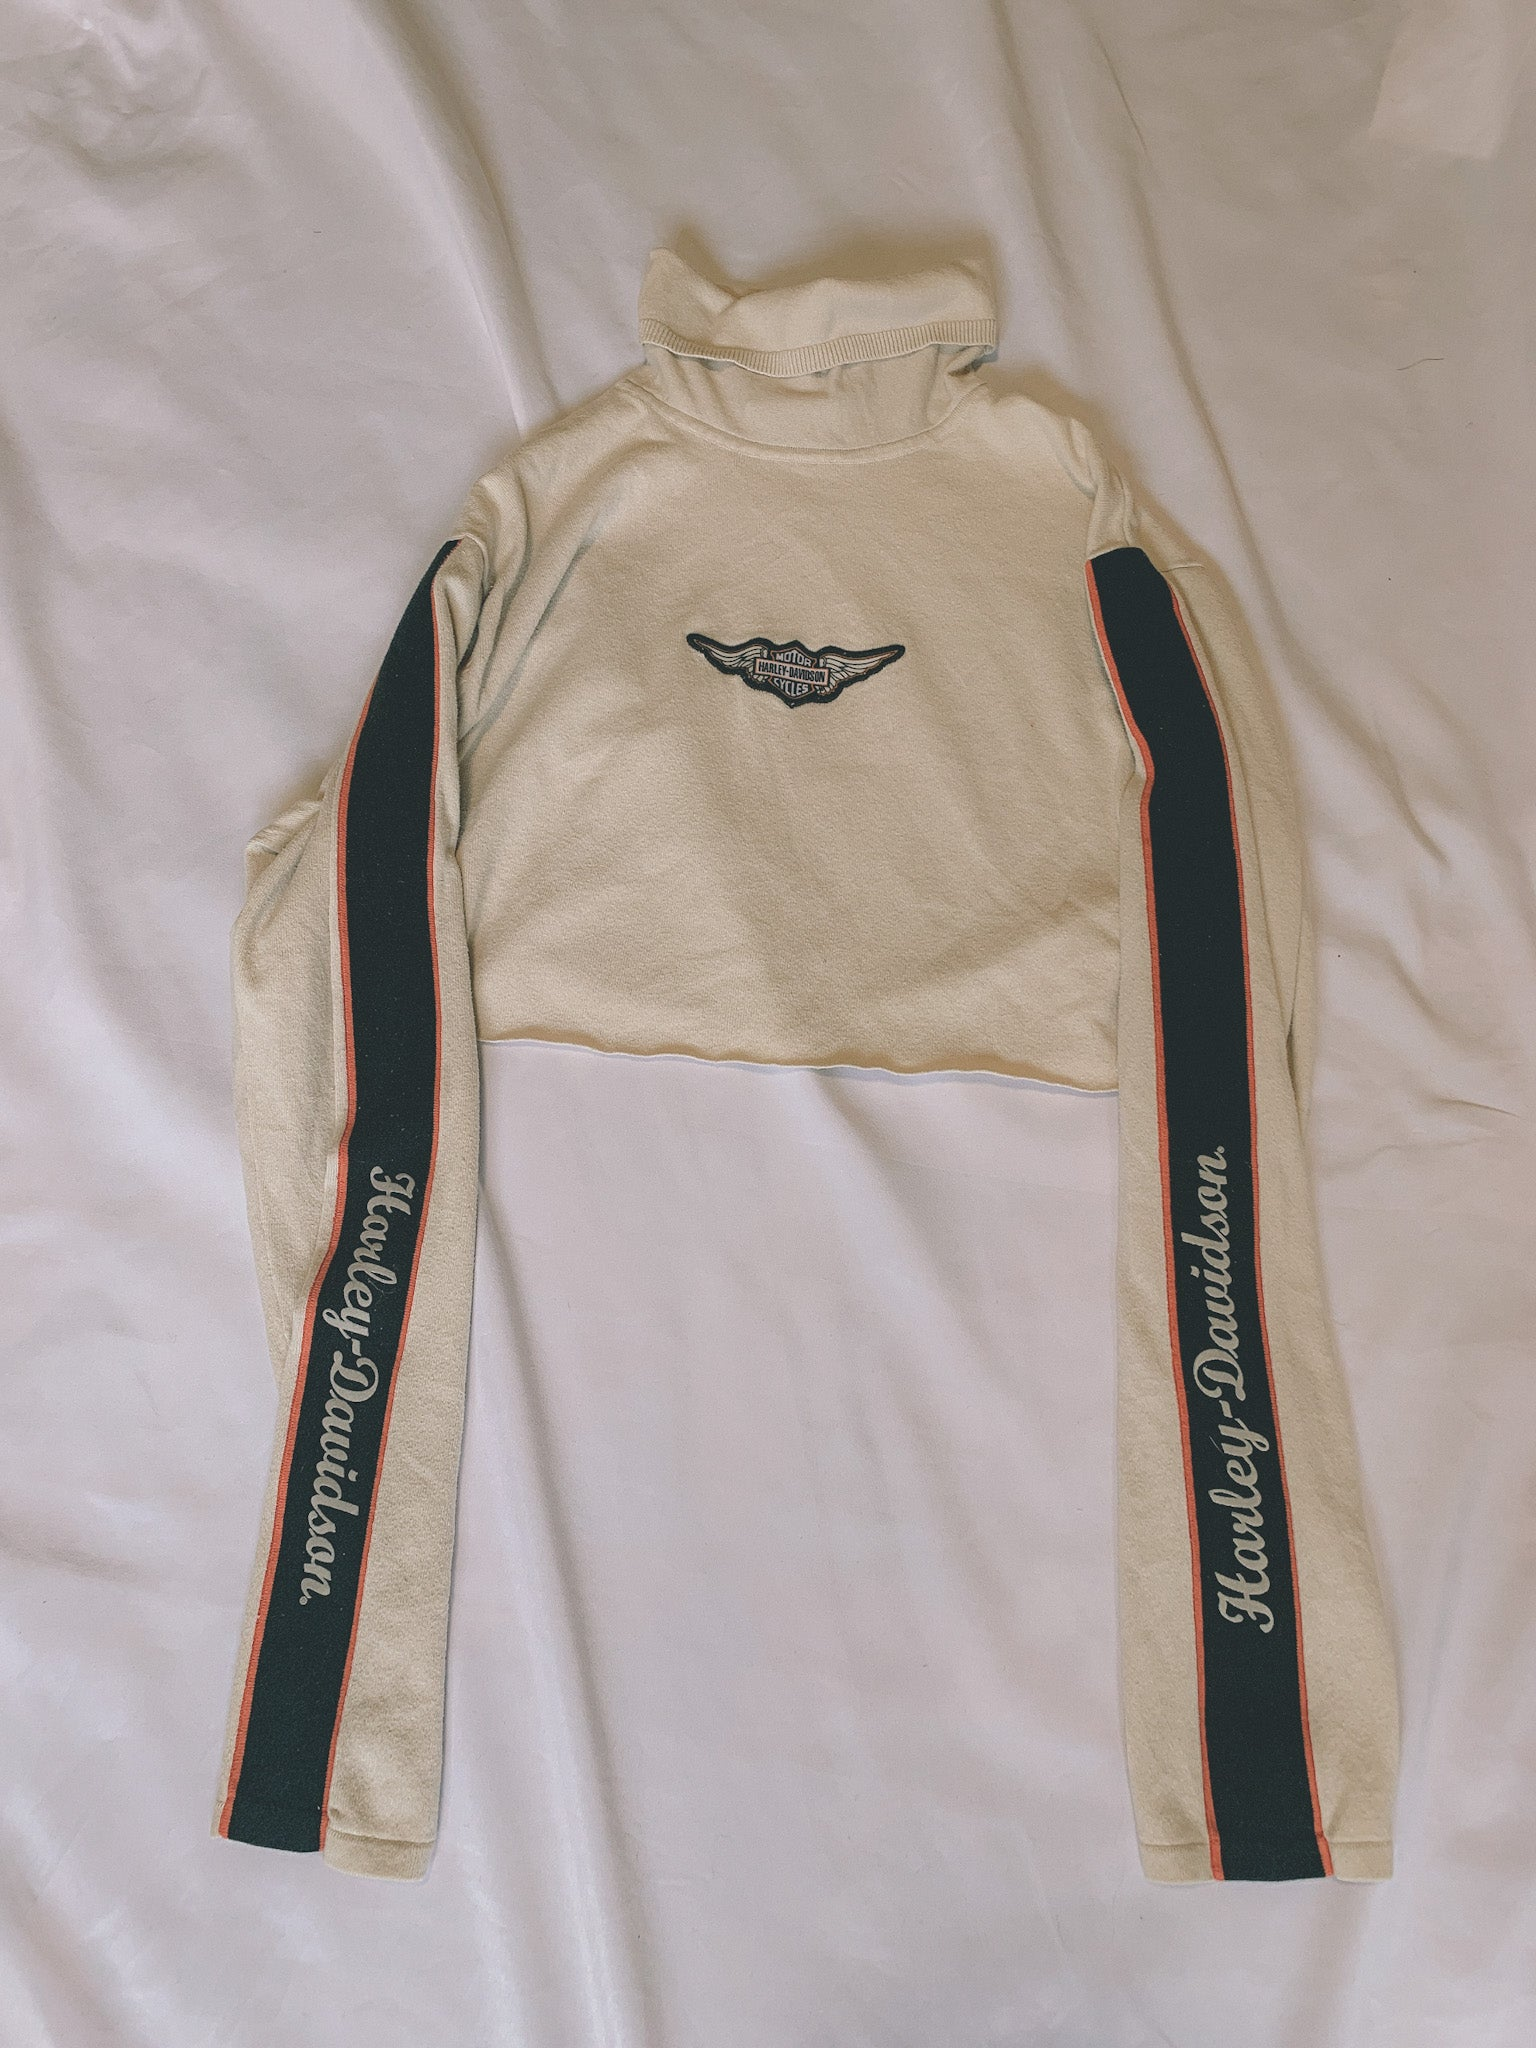 Harley Davidson cropped turtle neck